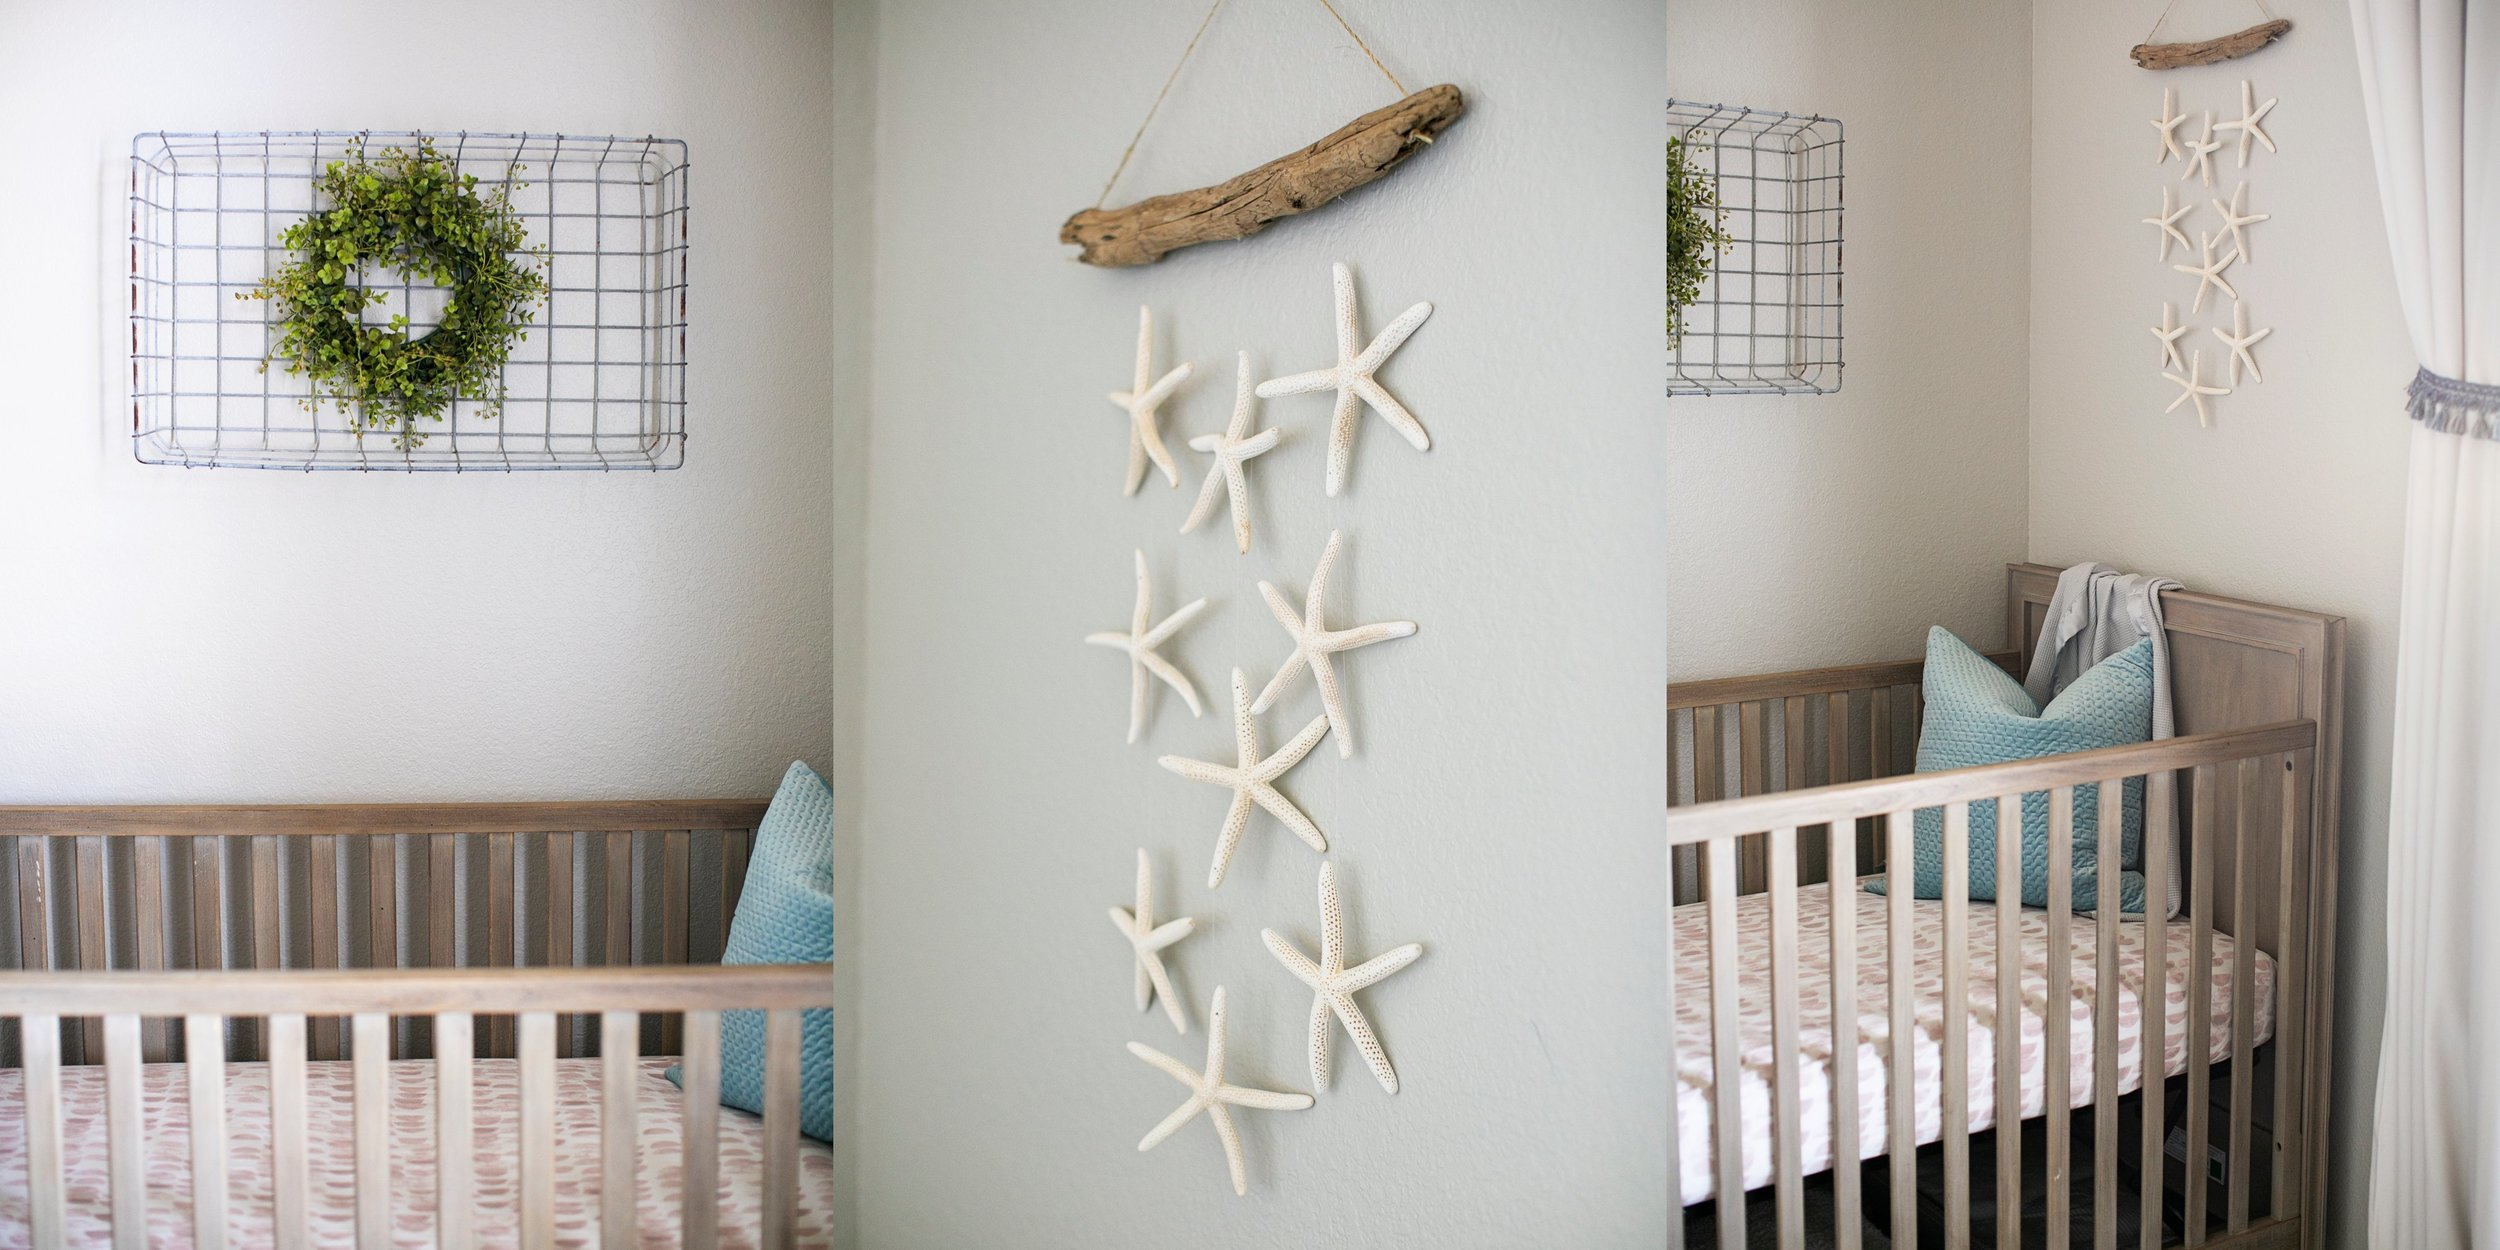 Linda_McMillan_Photography_Costal_Beach_Nursery_04.jpg